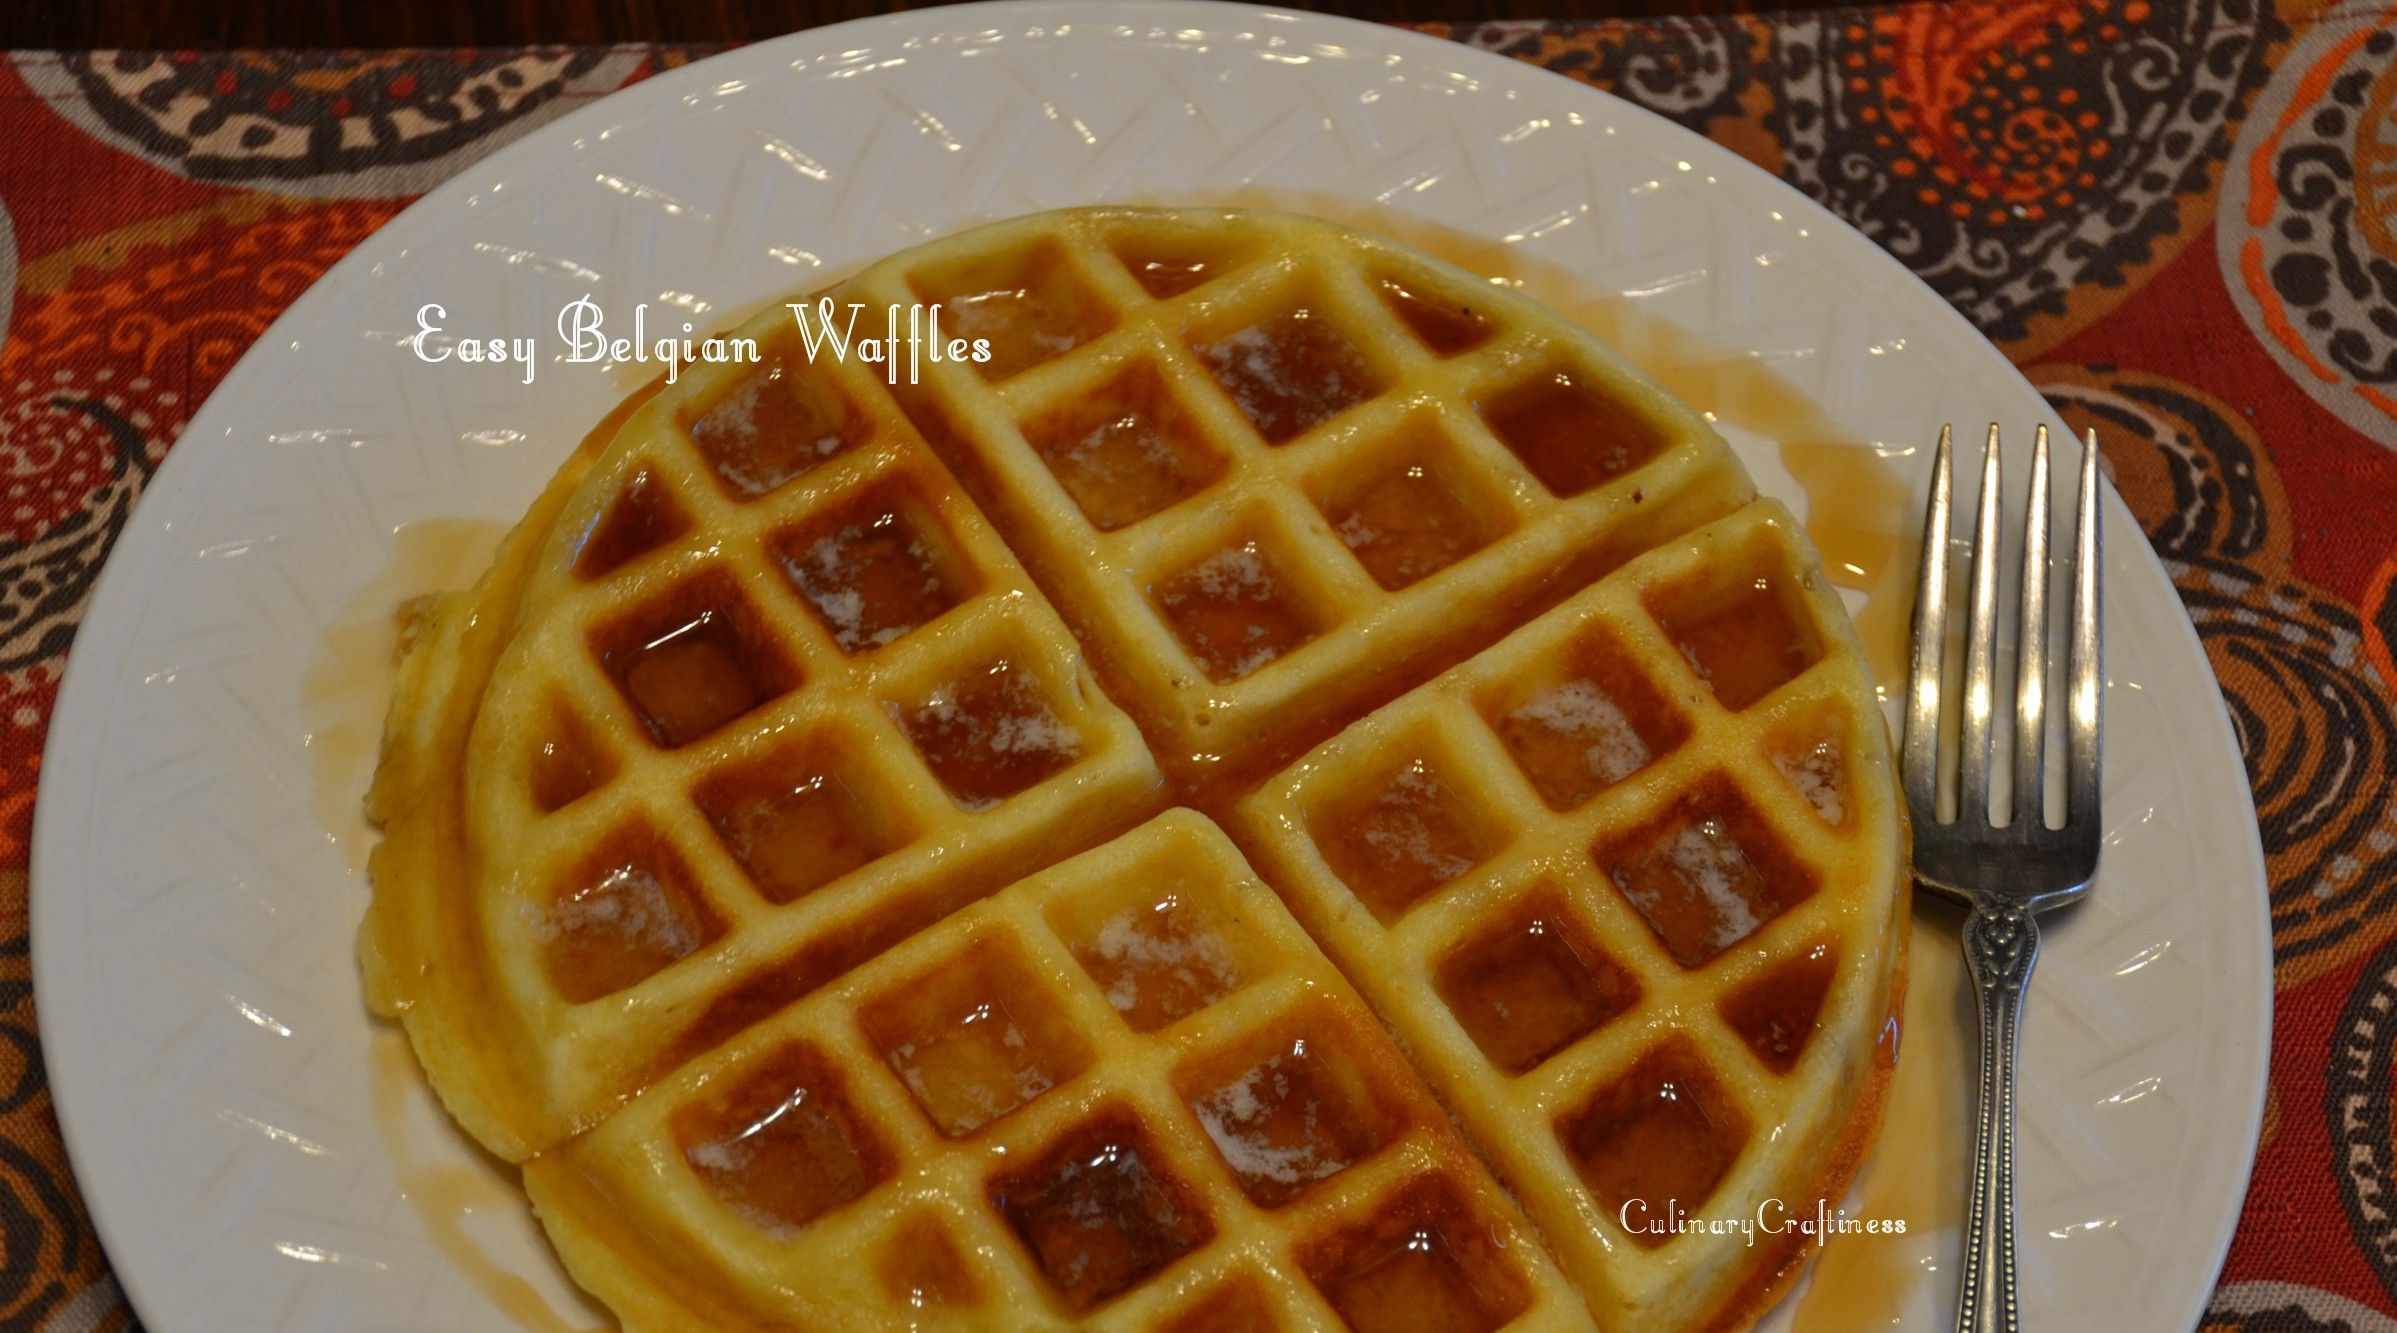 Easy Belgian Waffles With or Without Peanut Butter | Culinary Craftiness